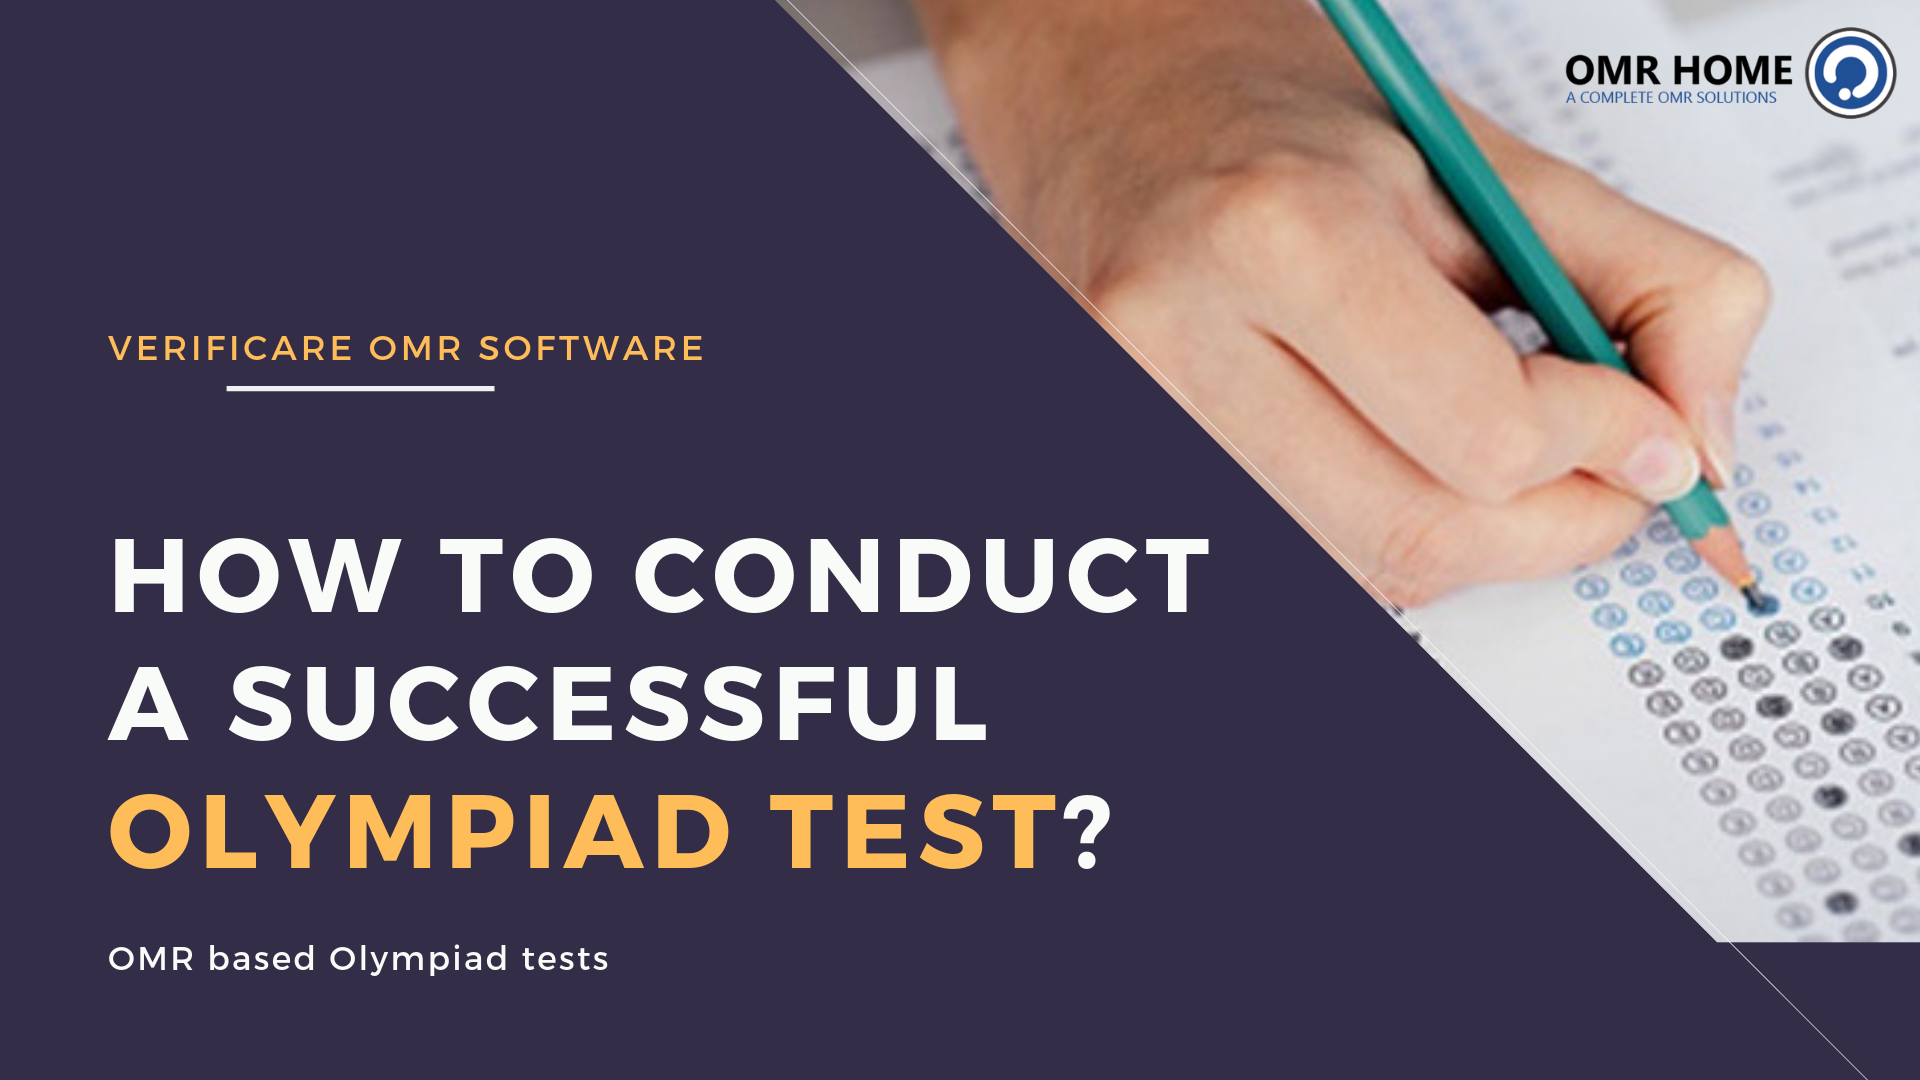 How to conduct a successful Olympiad test